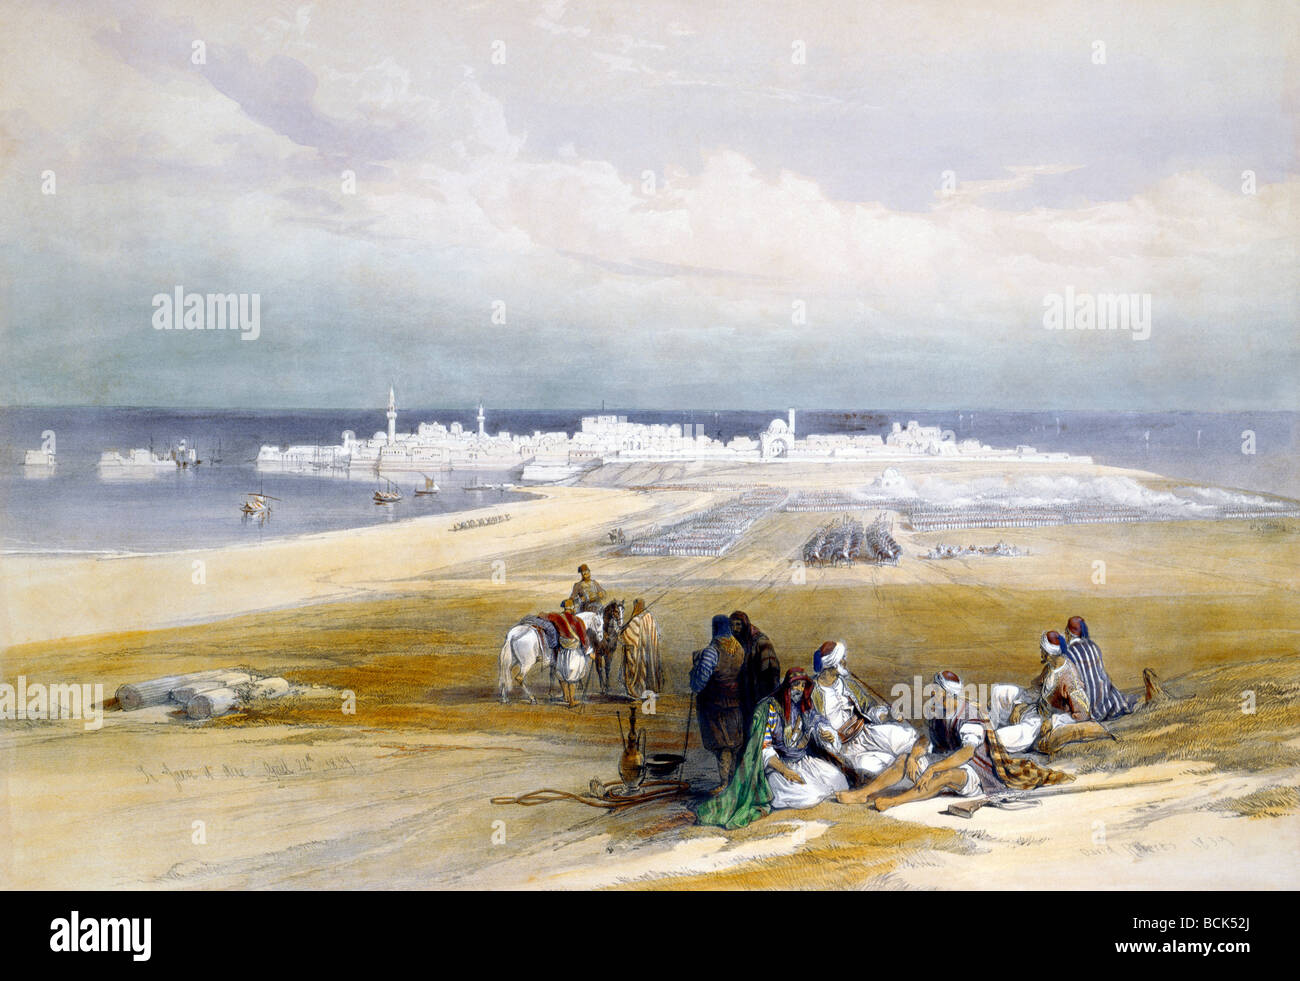 Oriental Painting Of Arab Travellers At St Jean D'Acre Eastern Medet Bay Of Haifa 24th April 1839 - Stock Image